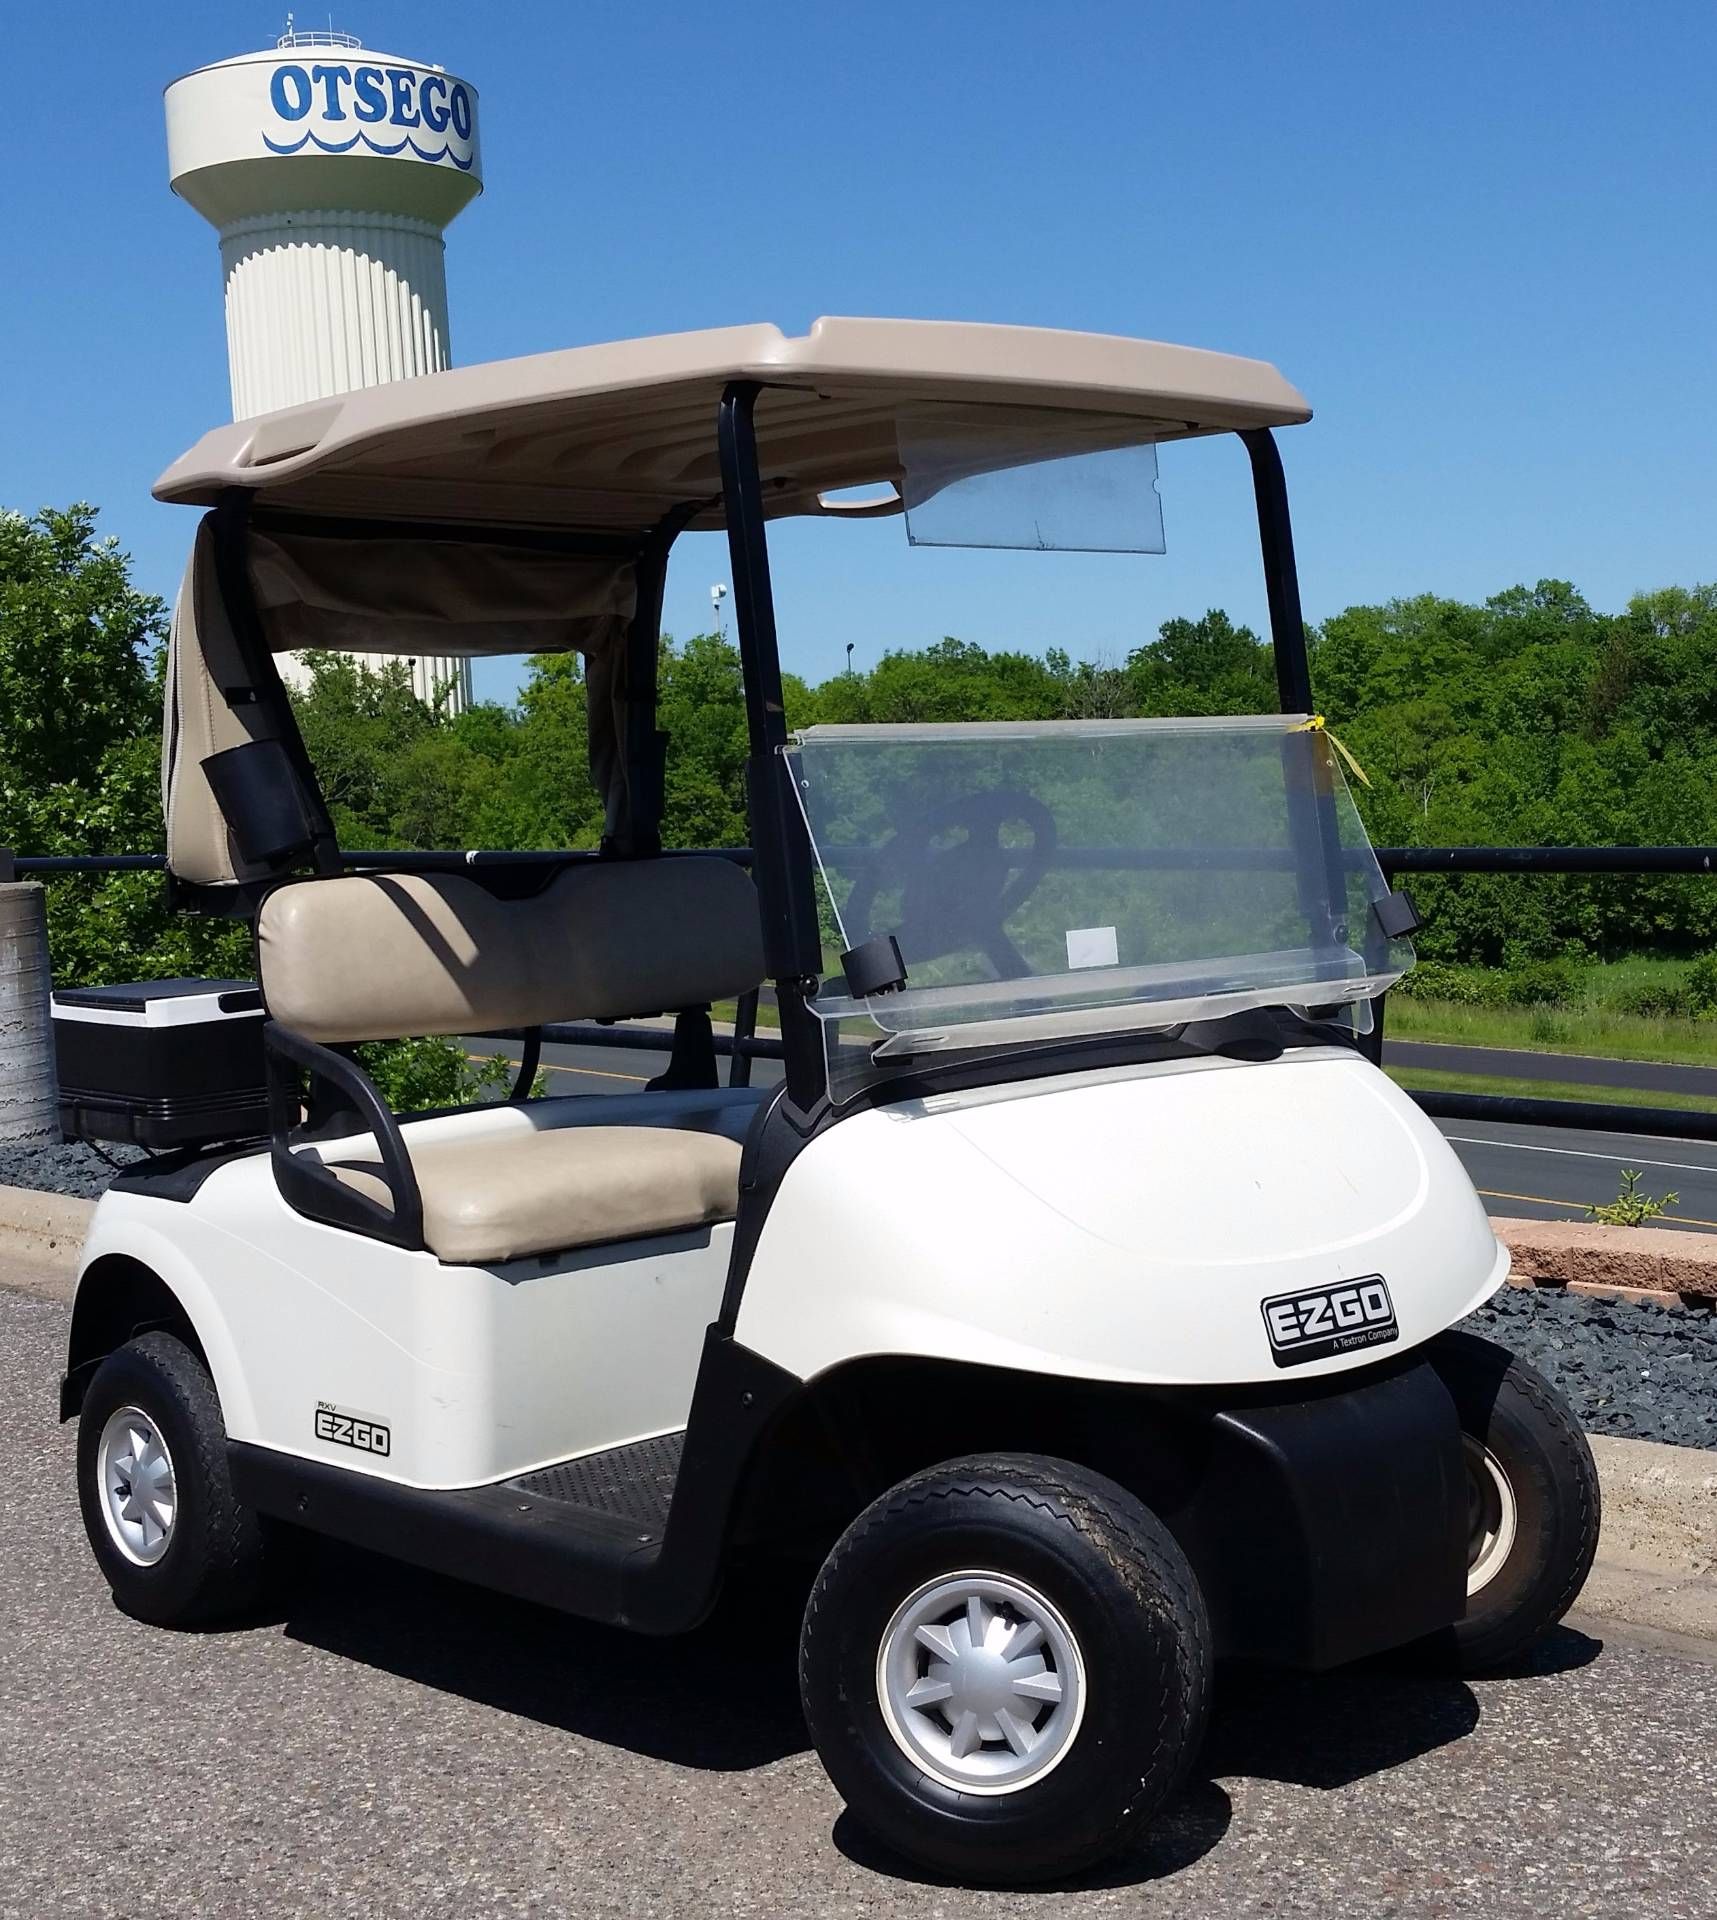 2014 E-Z-Go RXV Golf Carts Otsego Minnesota 5330028 on lincoln on a rail cart, 2013 ezgo txt, 2013 ezgo electric golf cart,